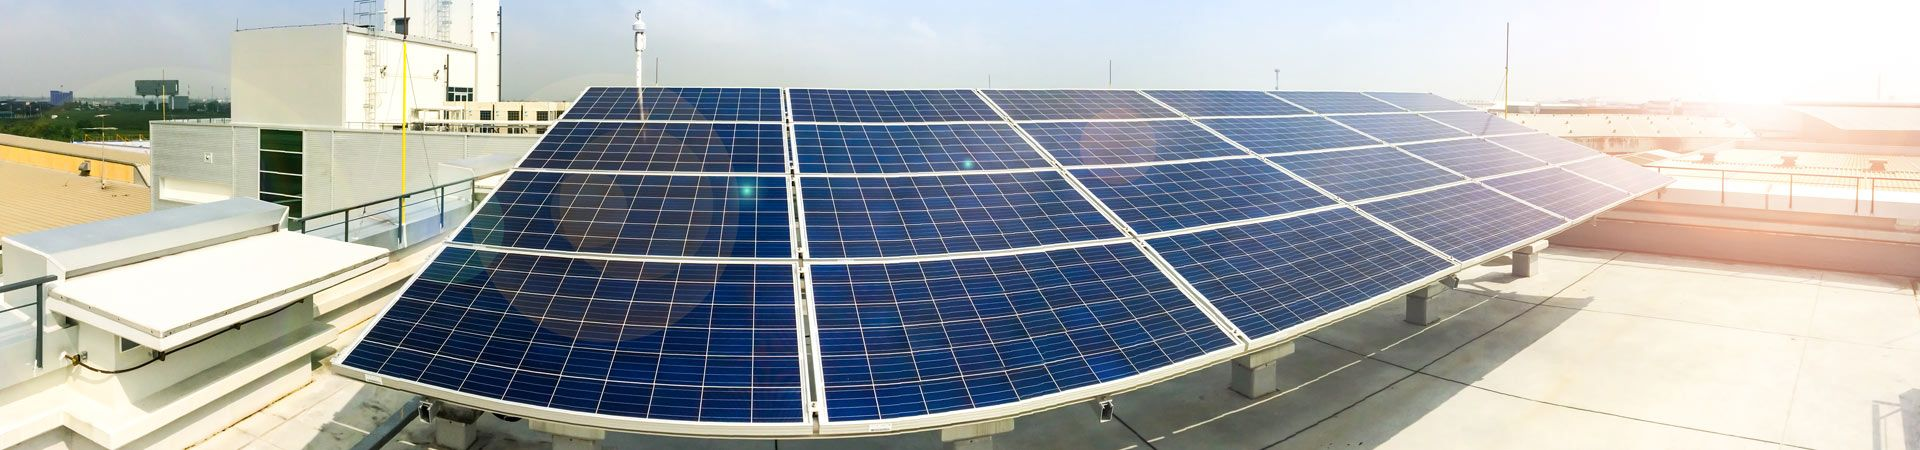 Commercial solar system Melbourne has been gaining